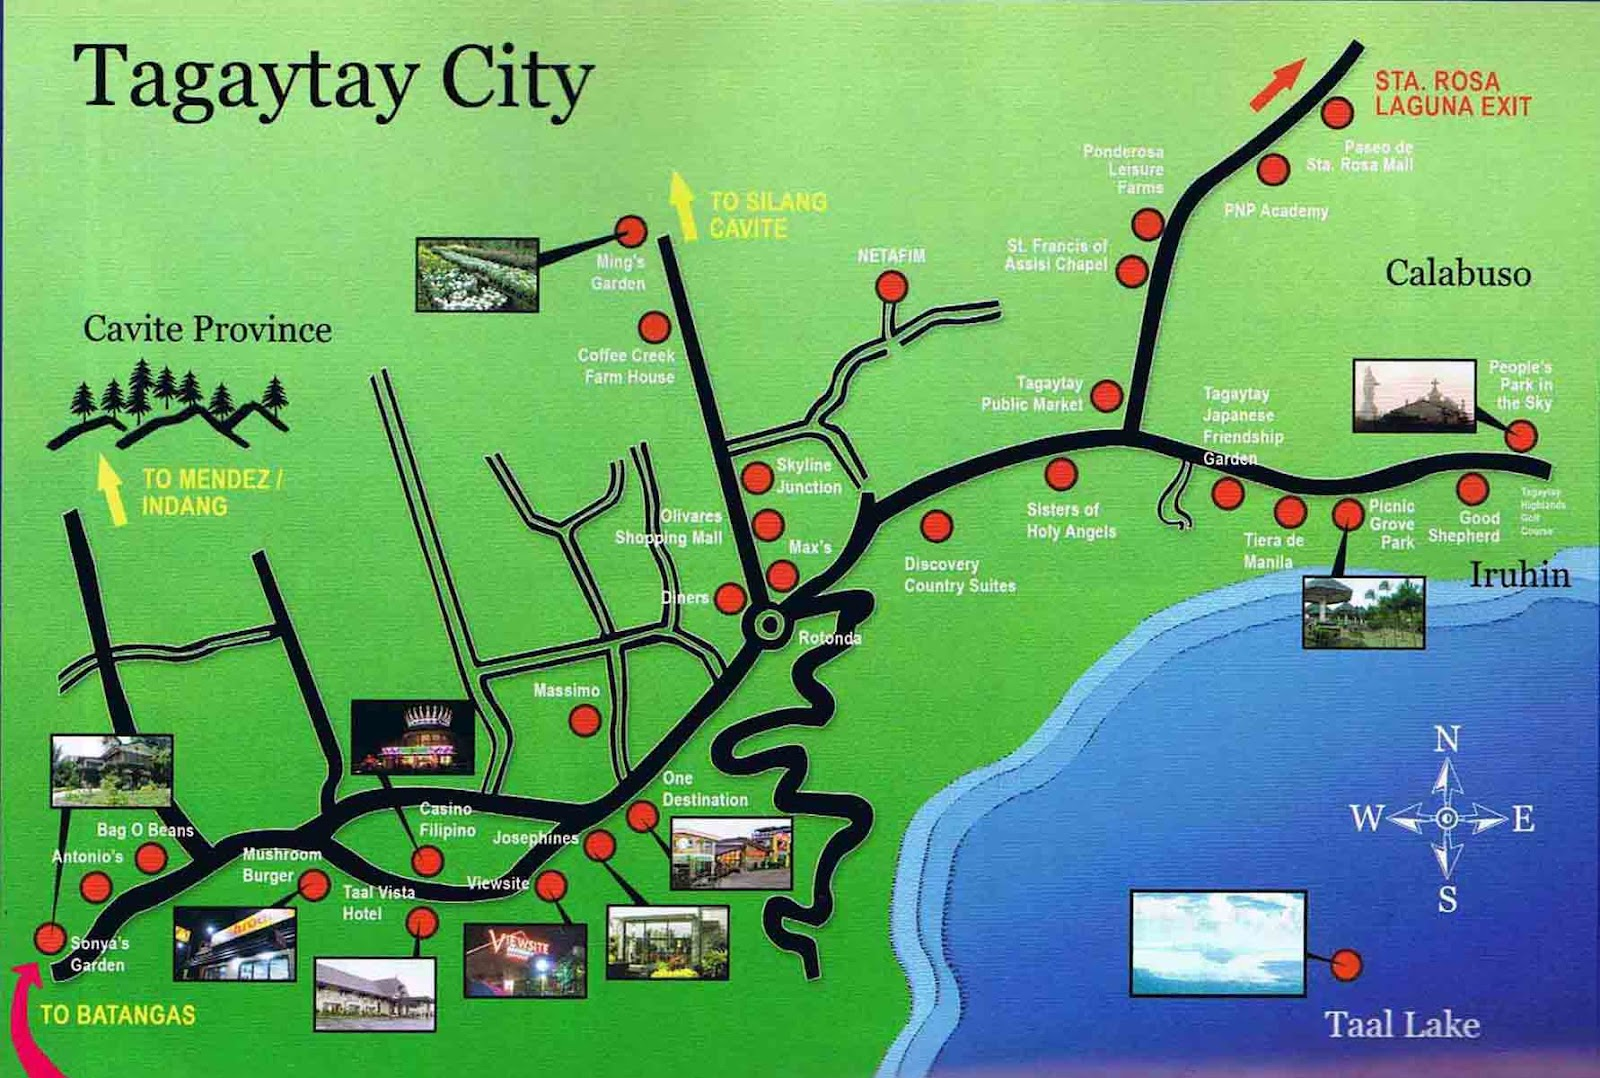 Tagaytay City Travel Guide